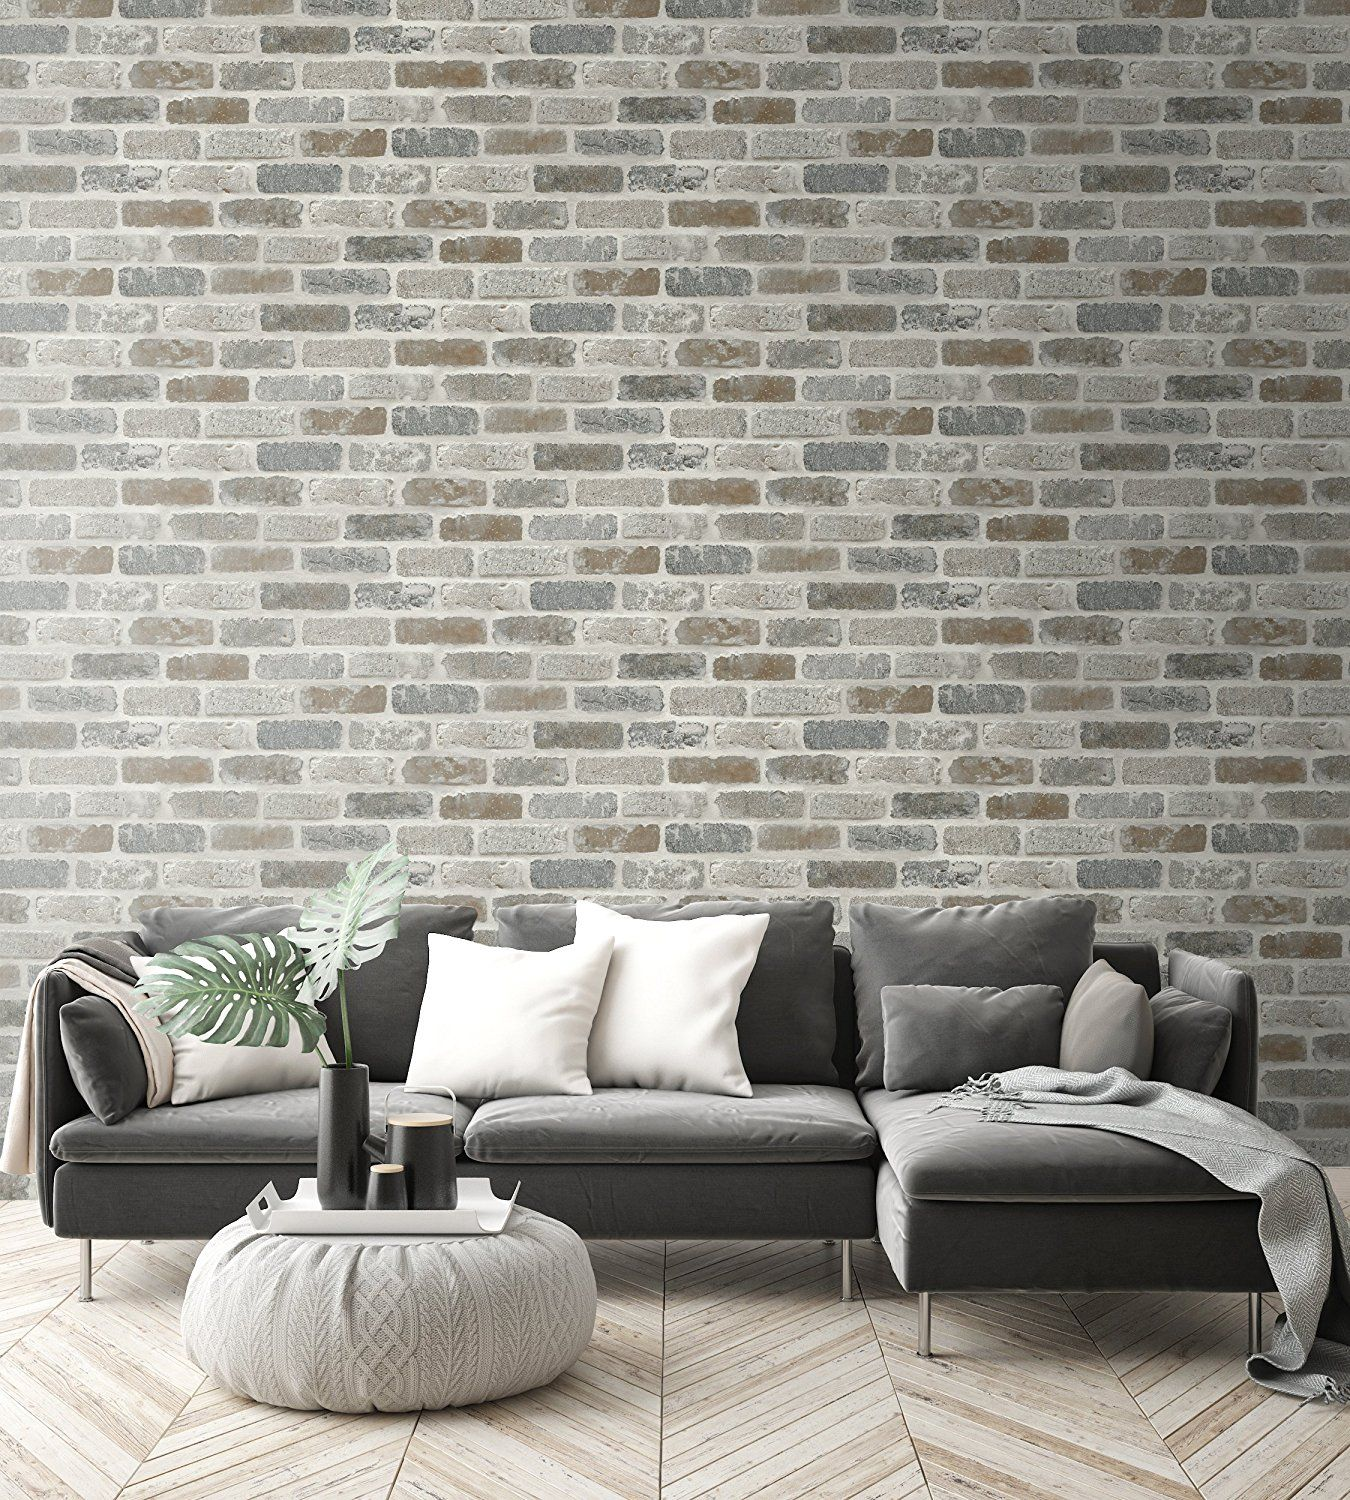 Nextwall Washed Faux Brick Peel And Stick Wallpaper